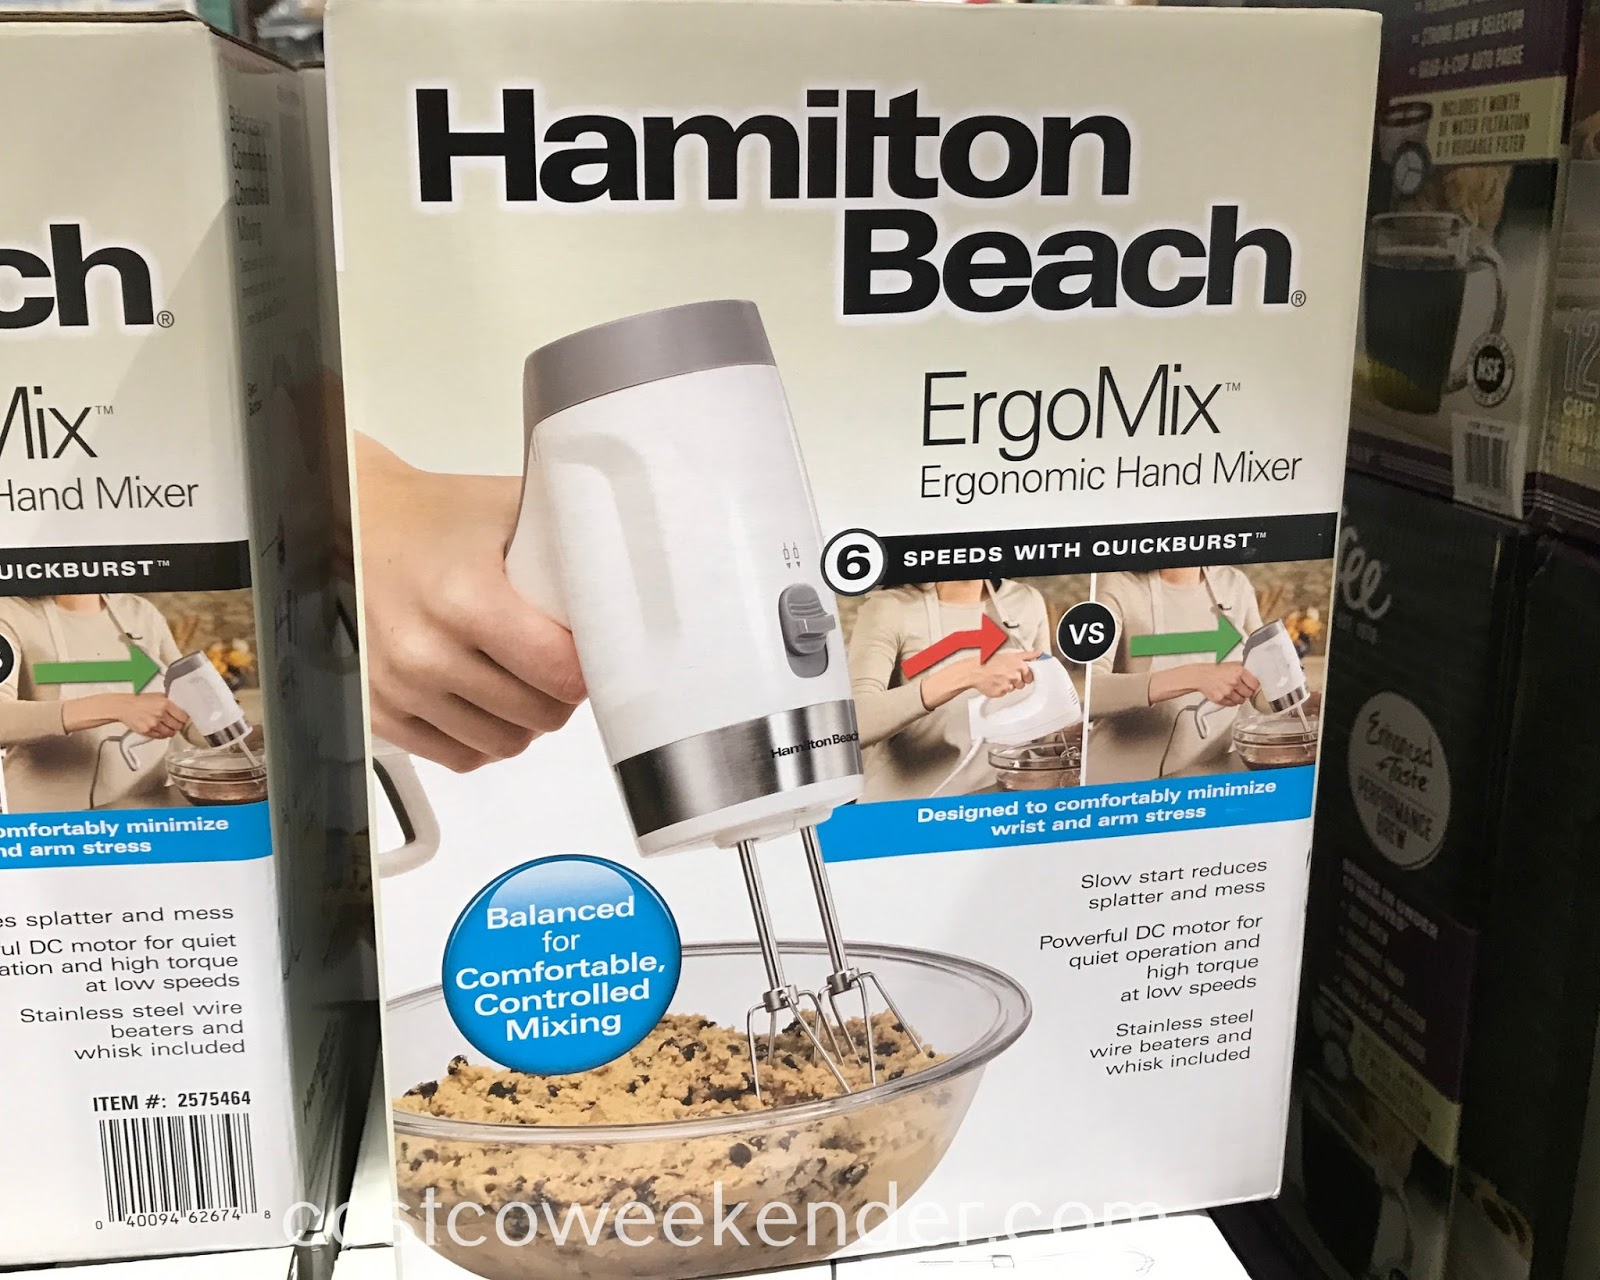 Easily mix batter or dough with the Hamilton Beach ErgoMix Ergonomic Hand Mixer